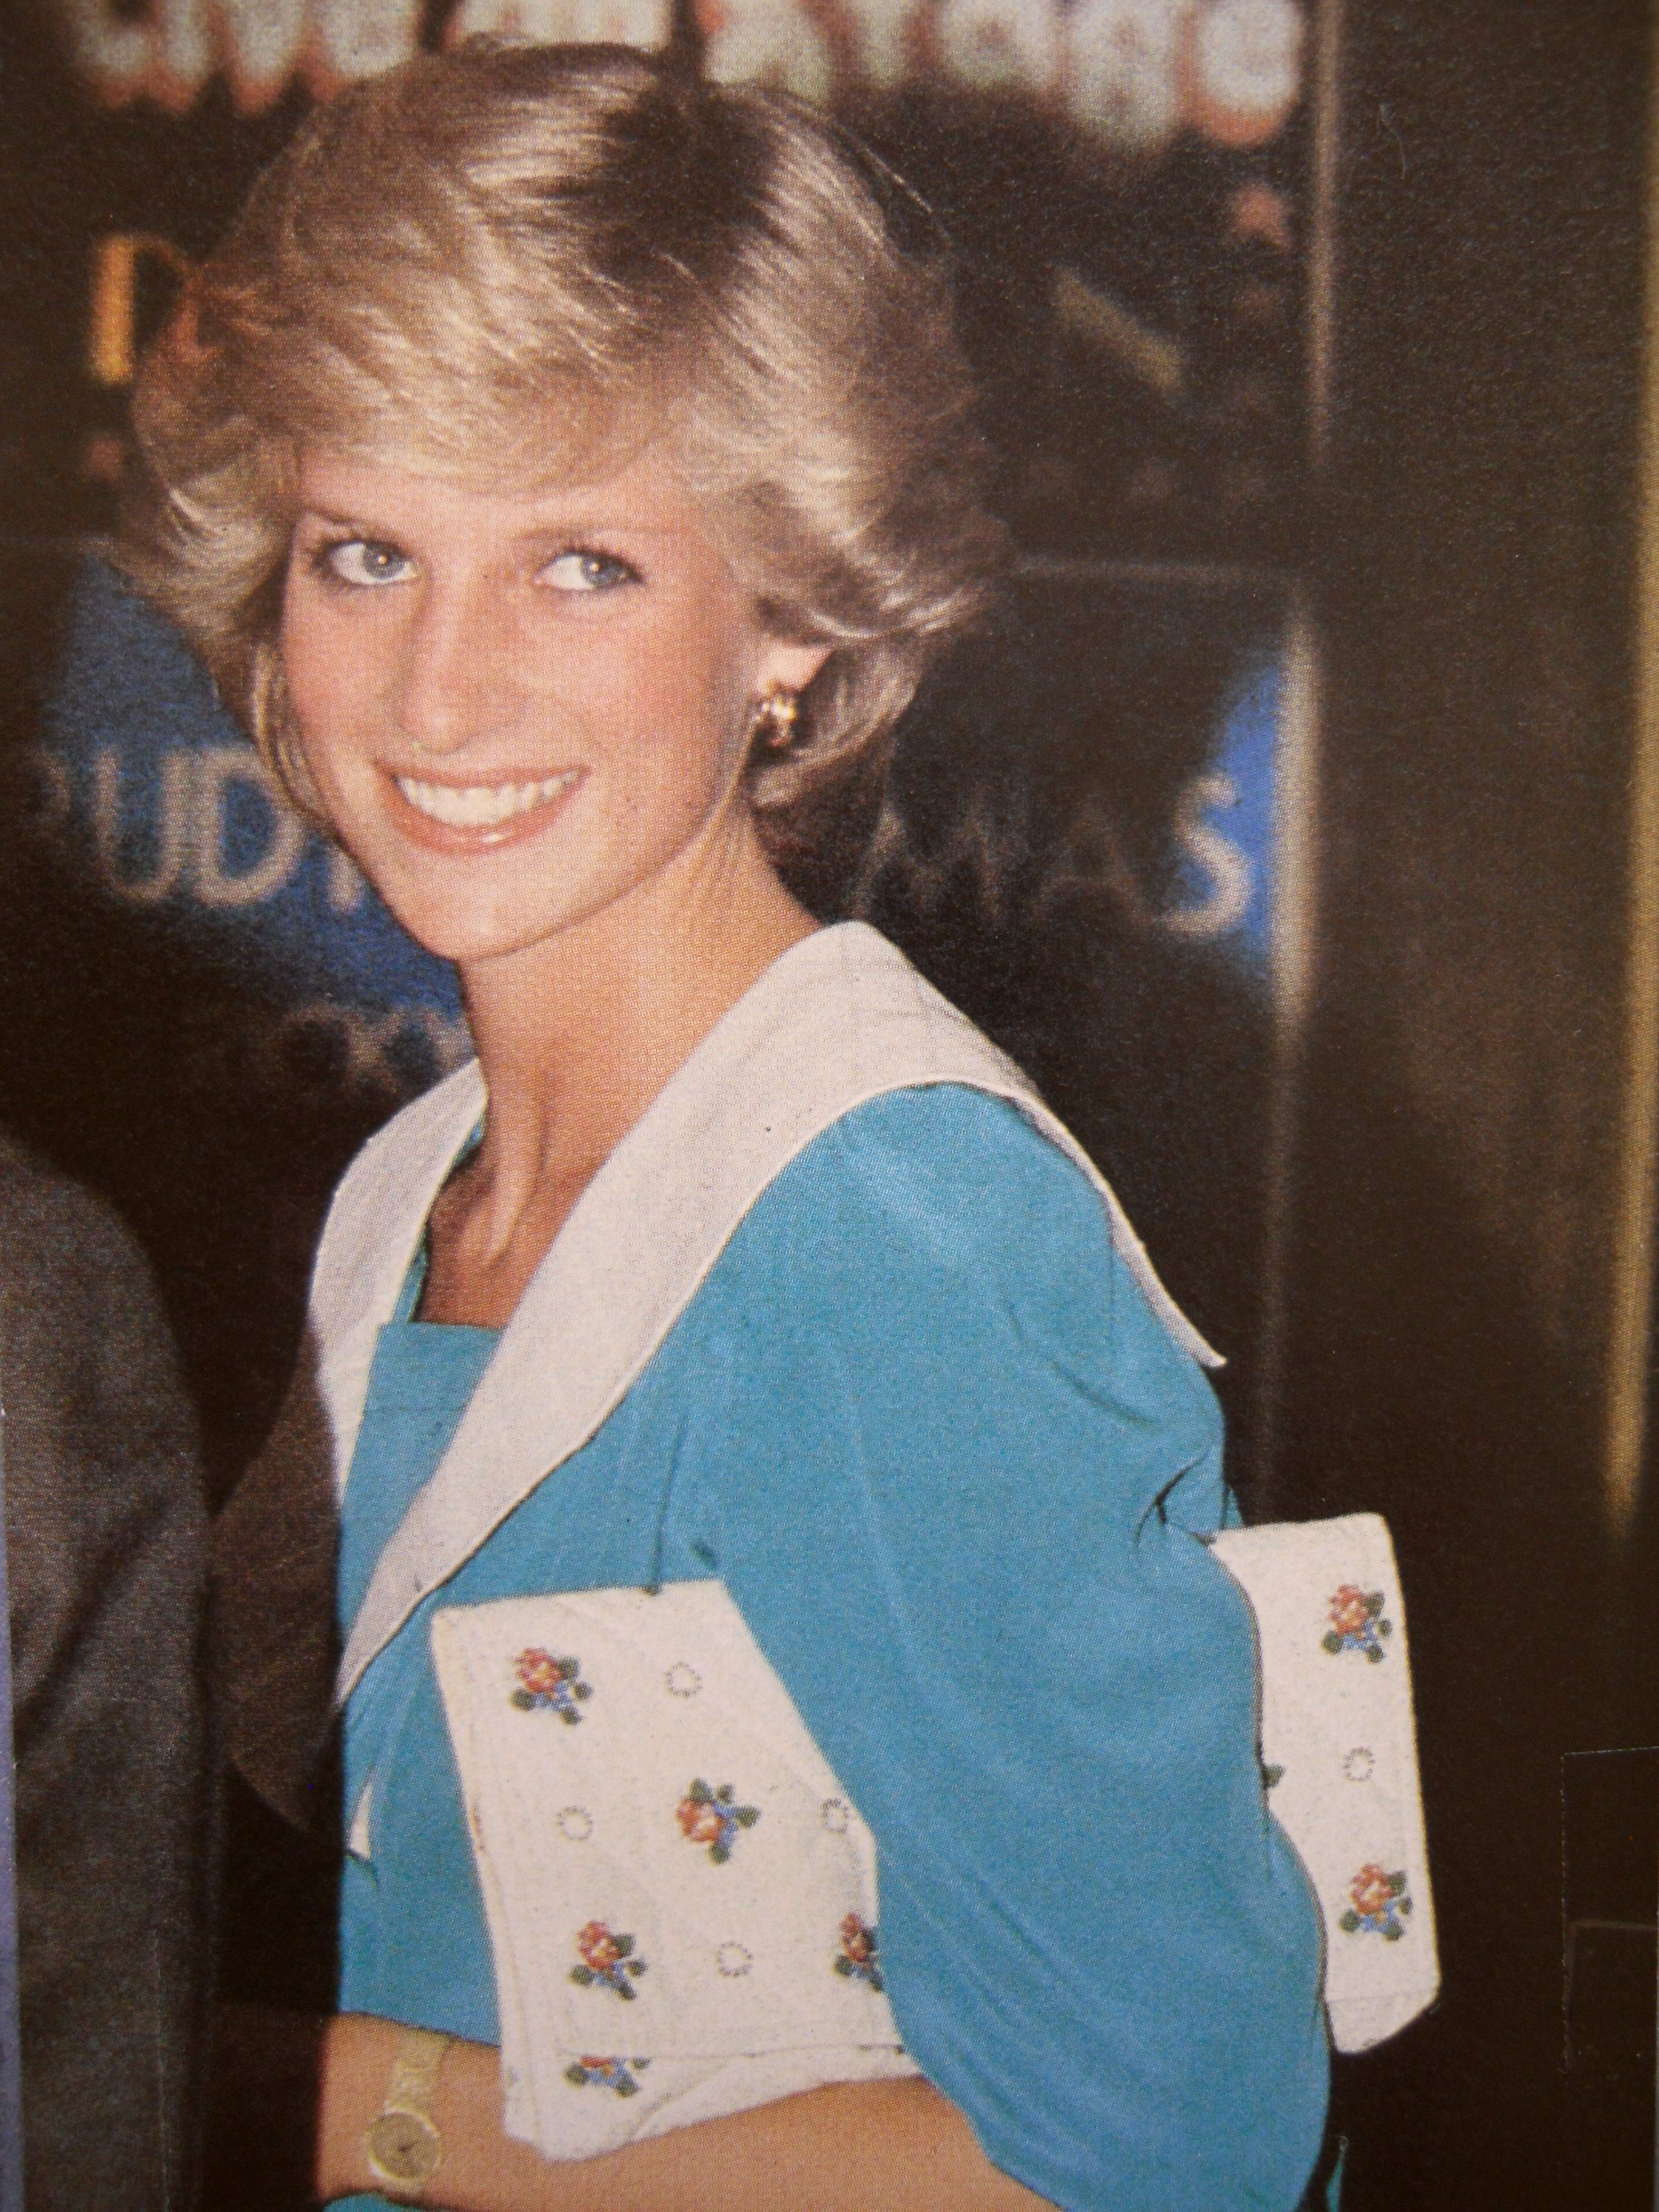 July 20, 1983: Princess arriving at London's Dominion Theatre to attend the Duran Duran Concert.